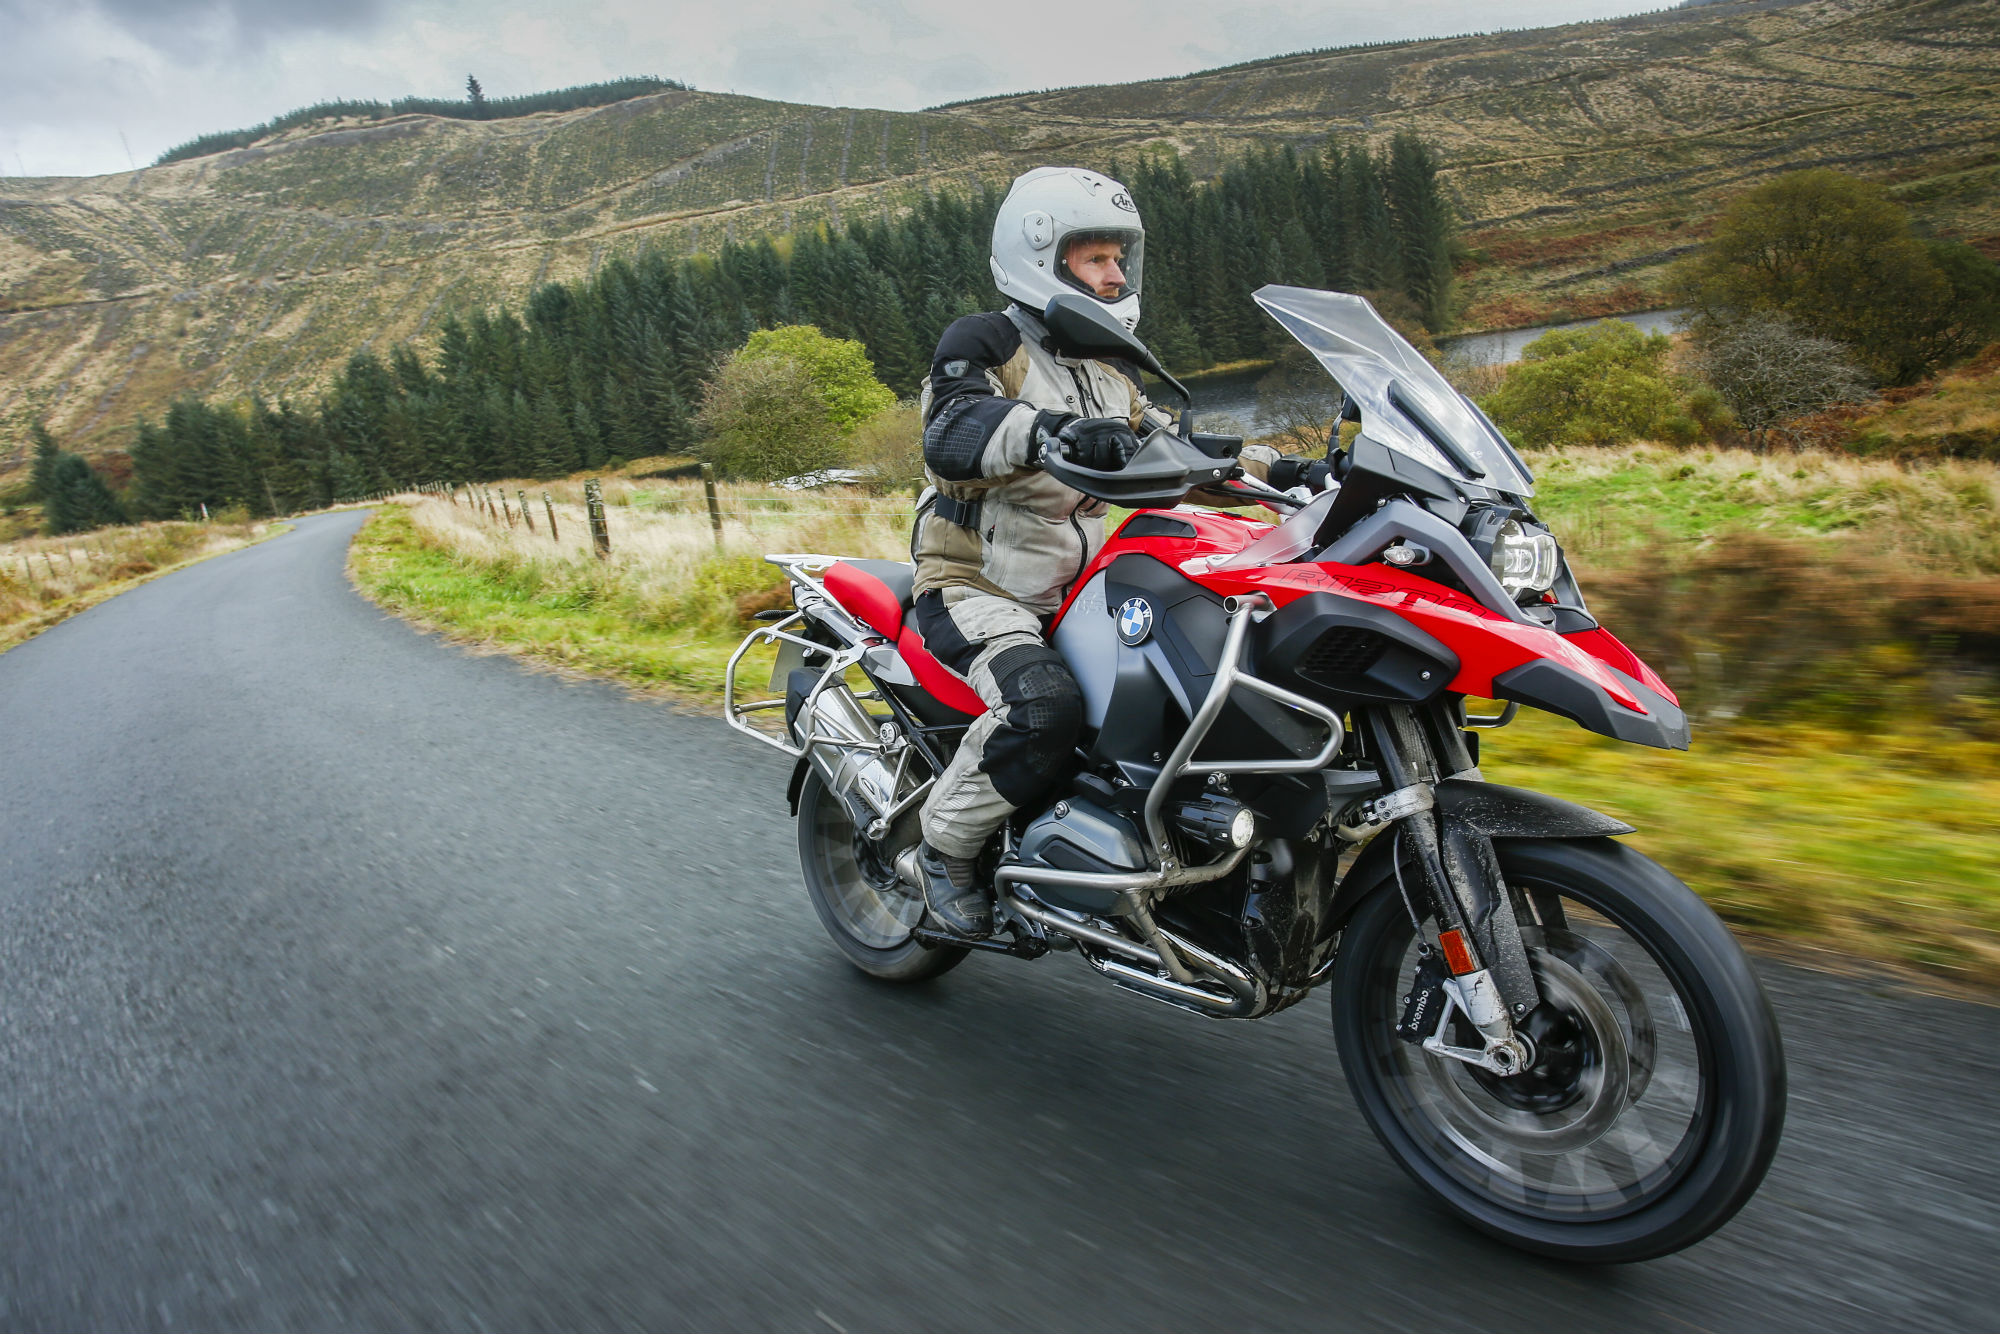 First Ride Bmw R1200gs Adventure Review Visordown The Top Line Of Bikes